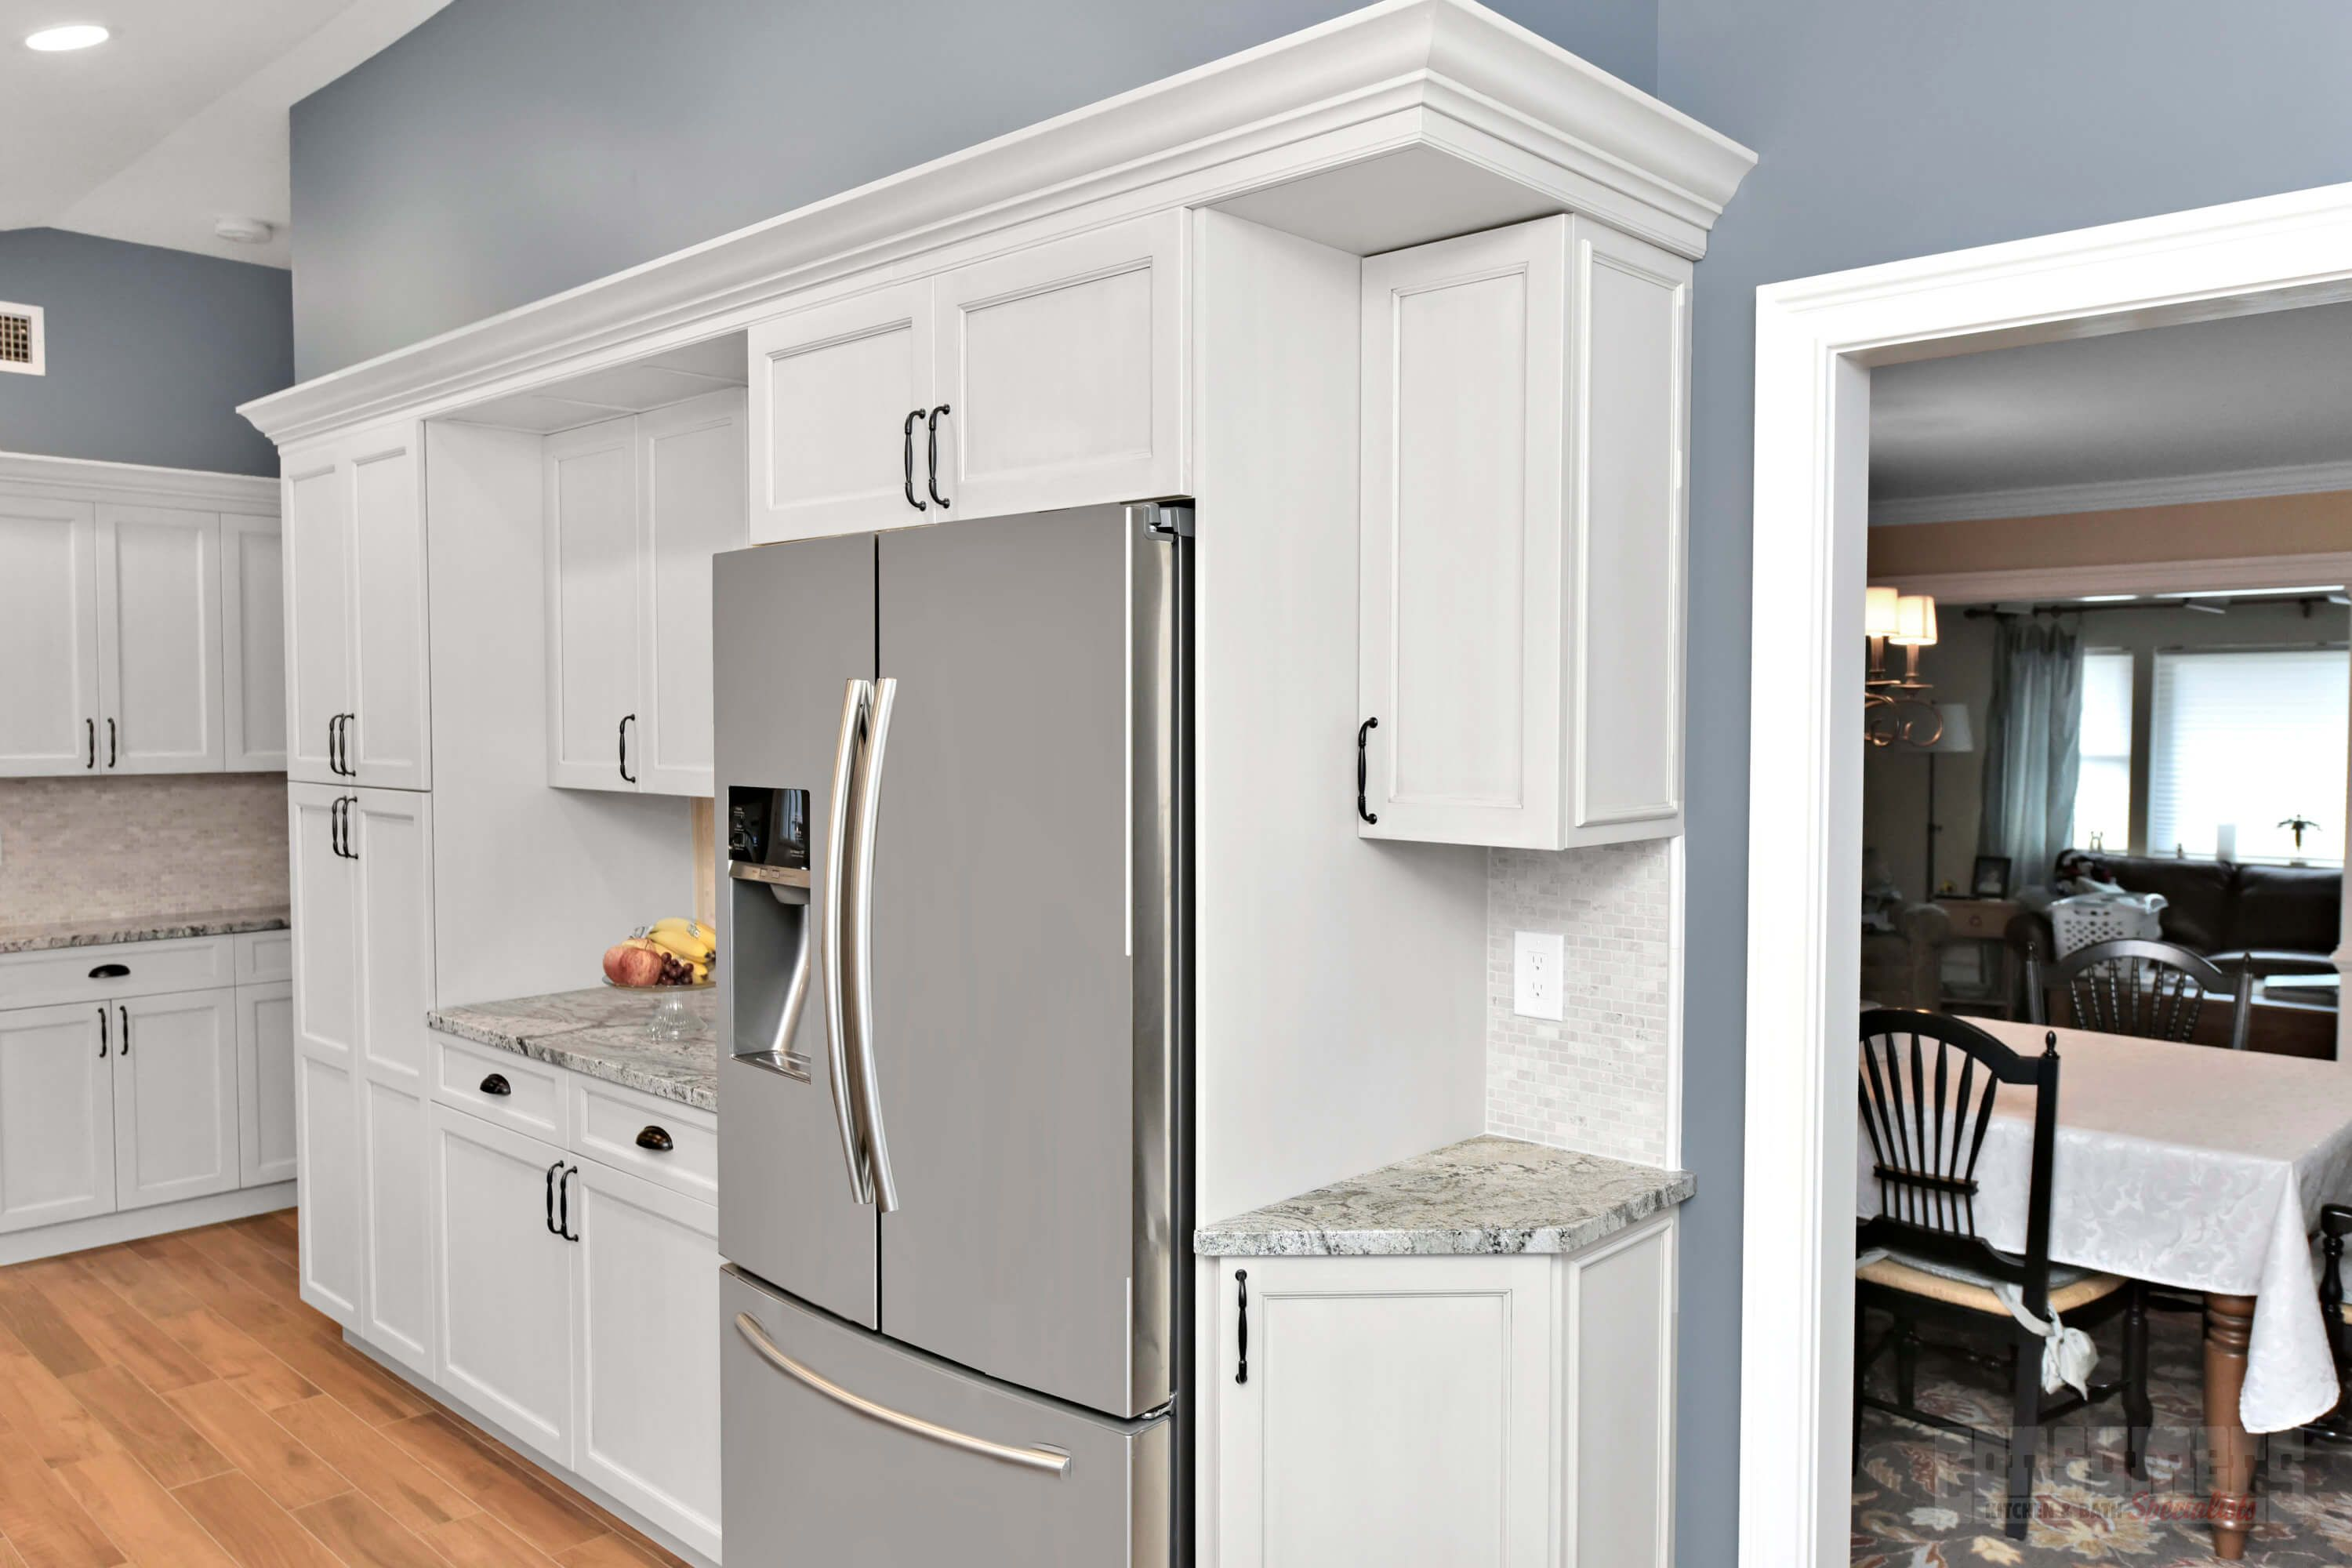 Pin by Consumers Kitchens & Baths on Lake Grove Caboodle ...